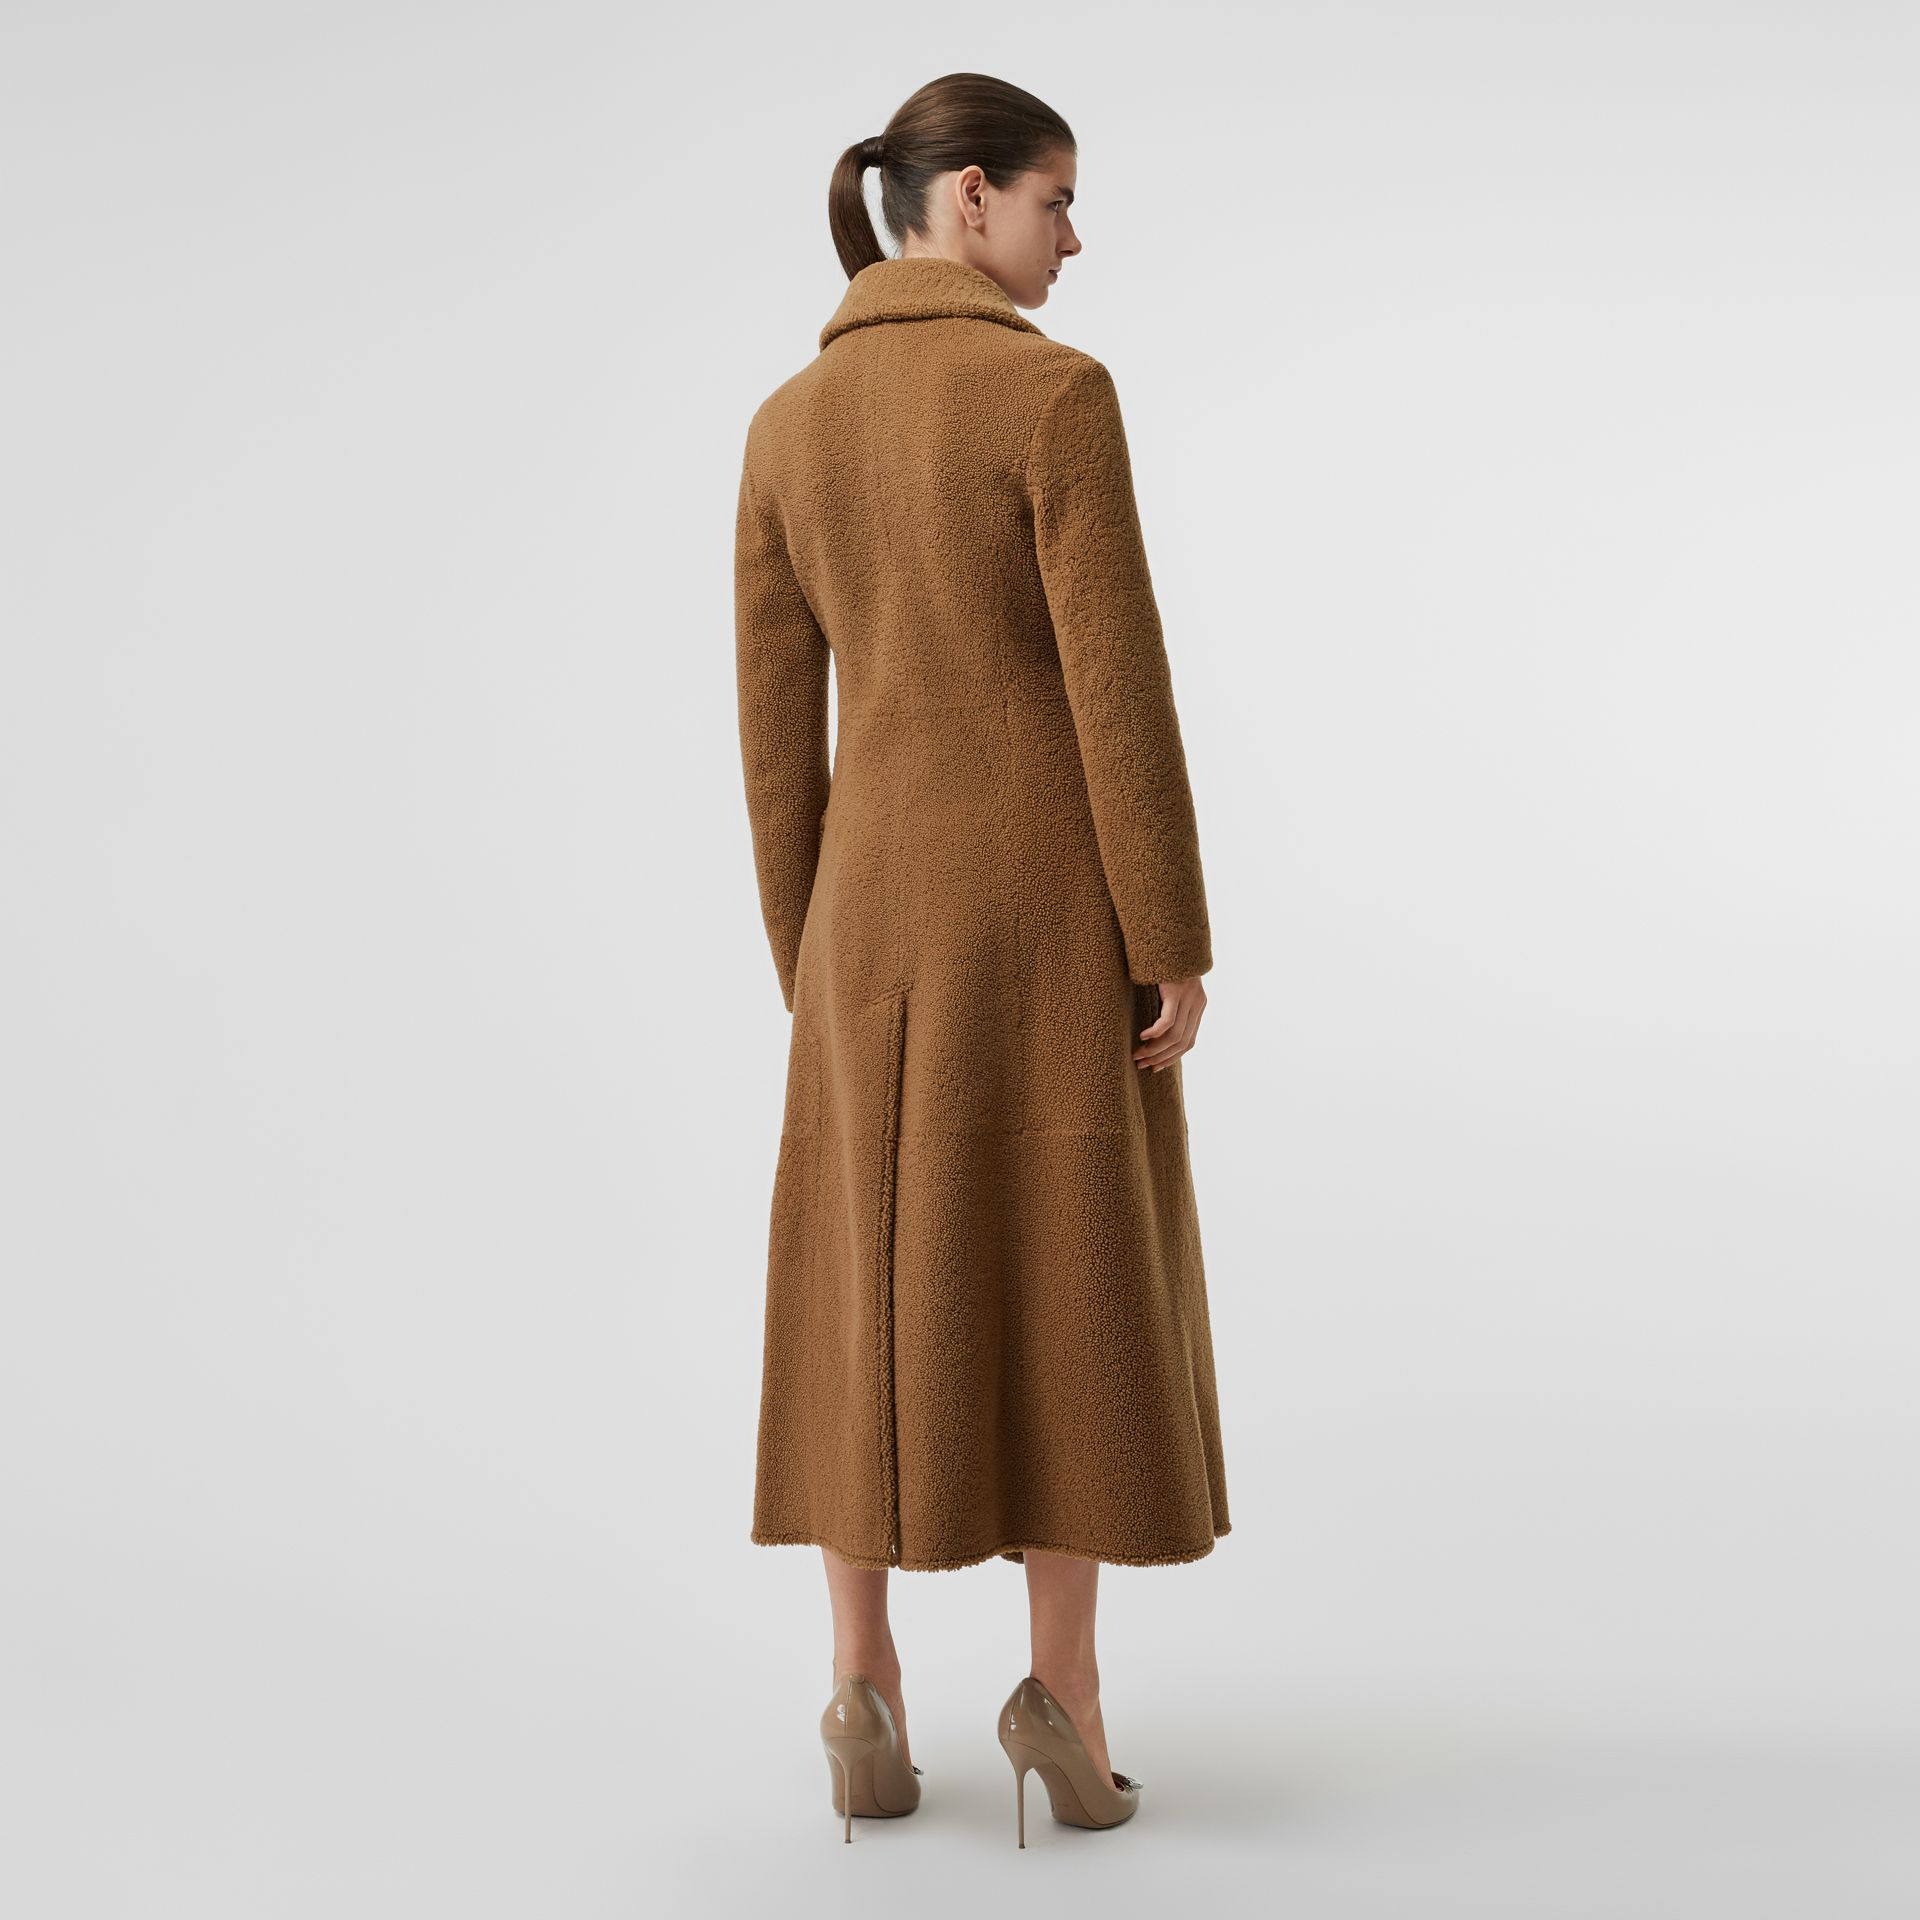 Shearling Tailored Coat in Caramel - Women | Burberry - gallery image 2